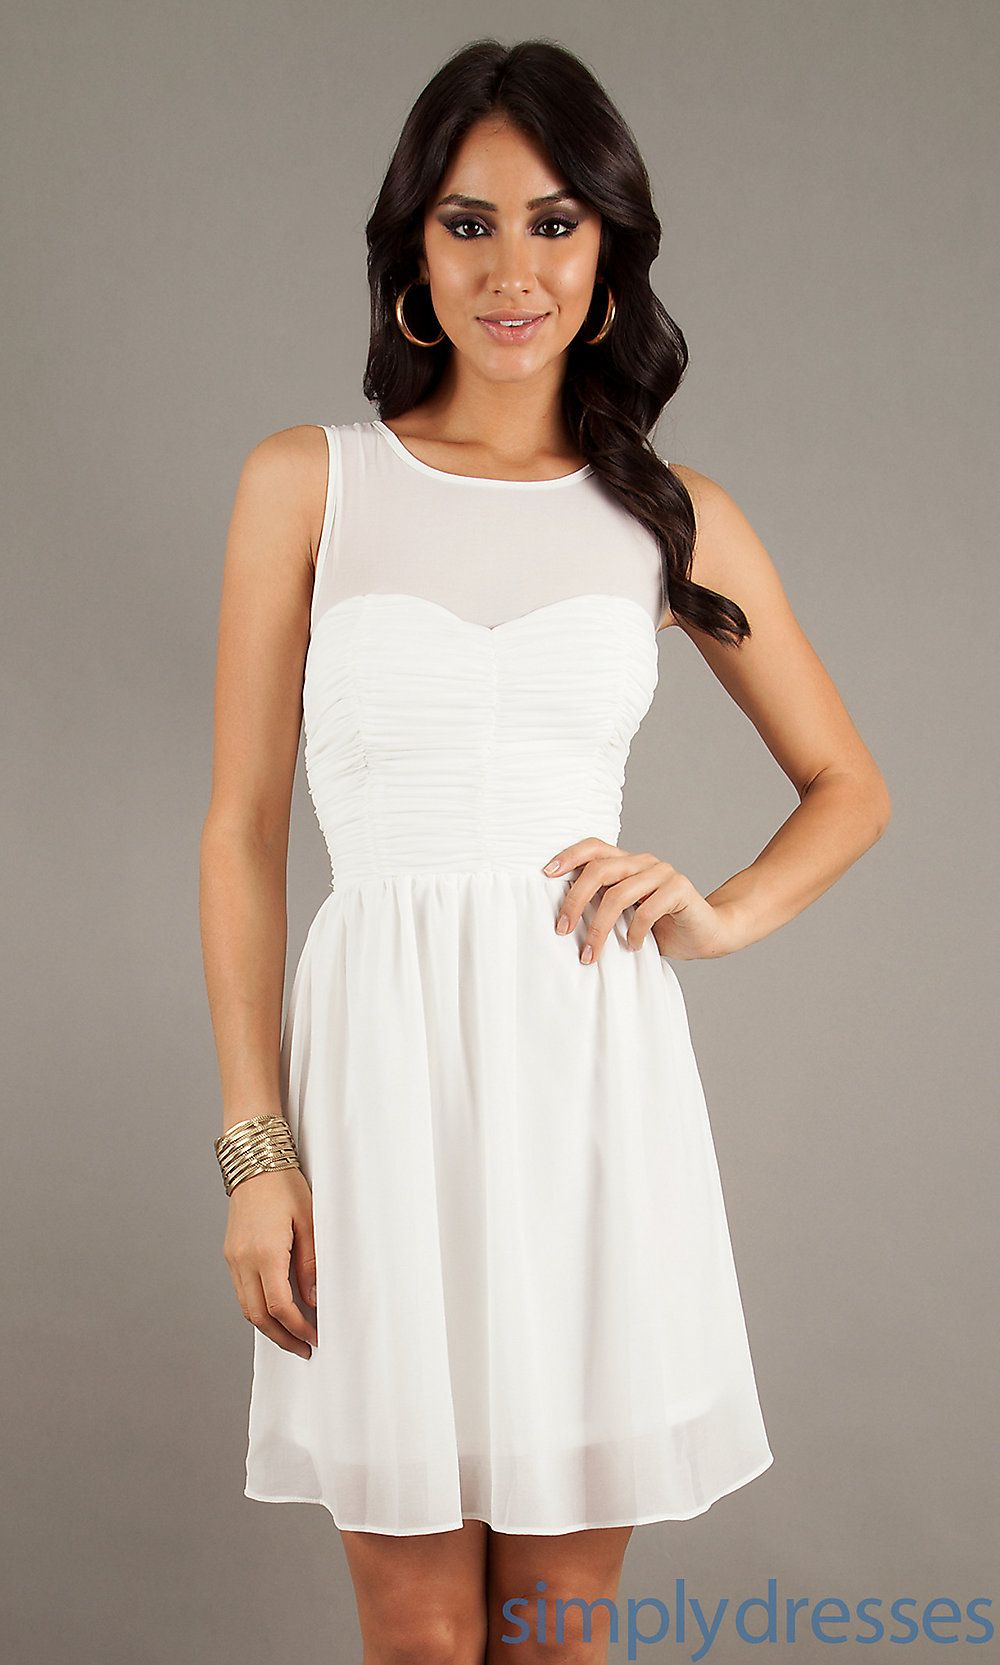 Short Casual Dress, Short White Graduation Dress - Simply Dresses ...